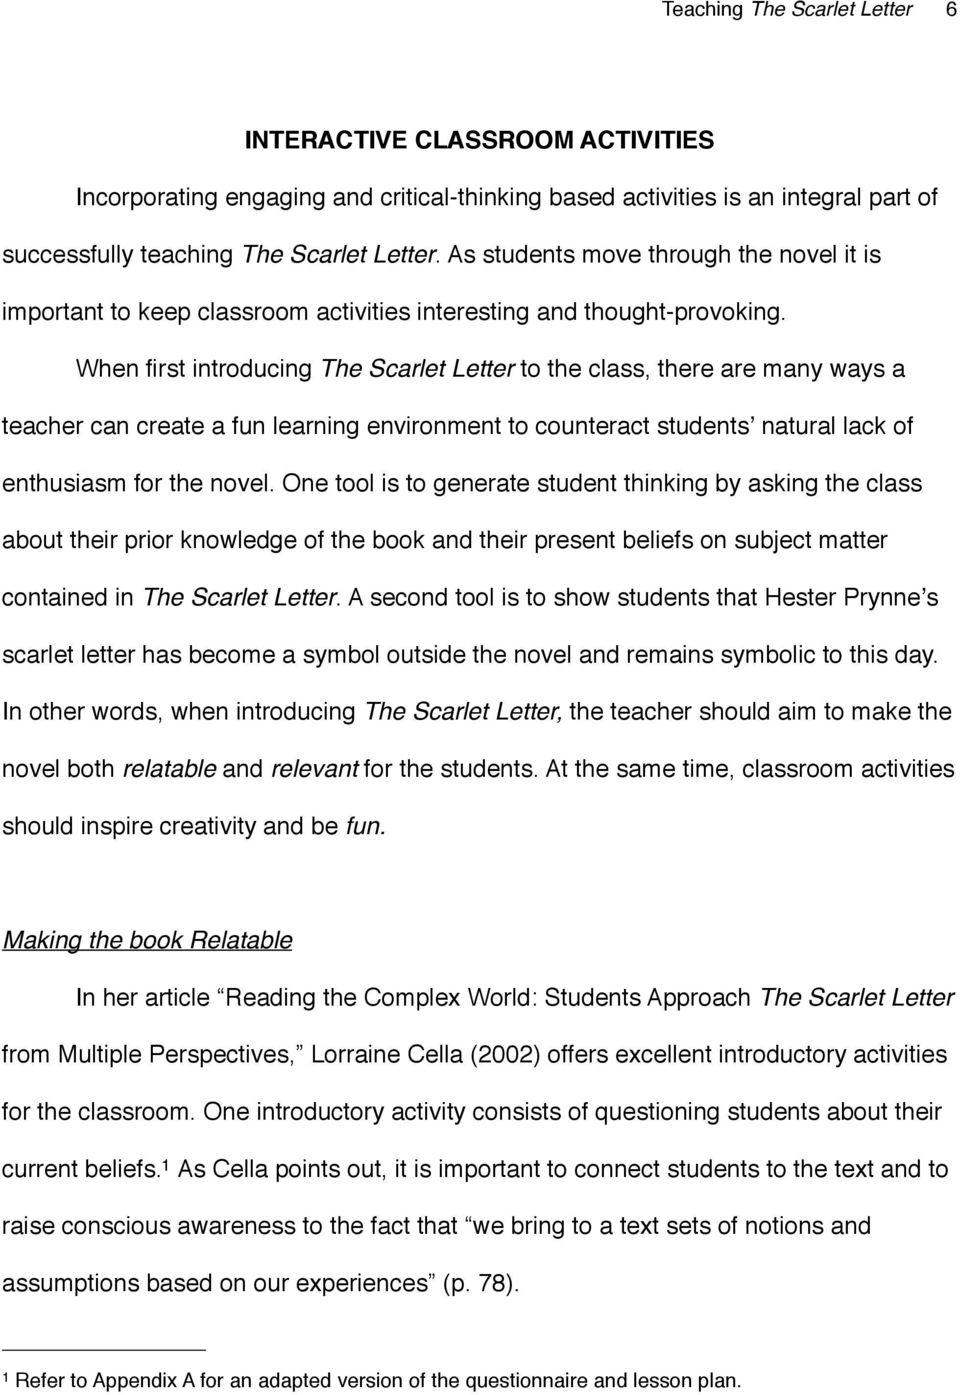 When first introducing The Scarlet Letter to the class, there are many ways  a teacher